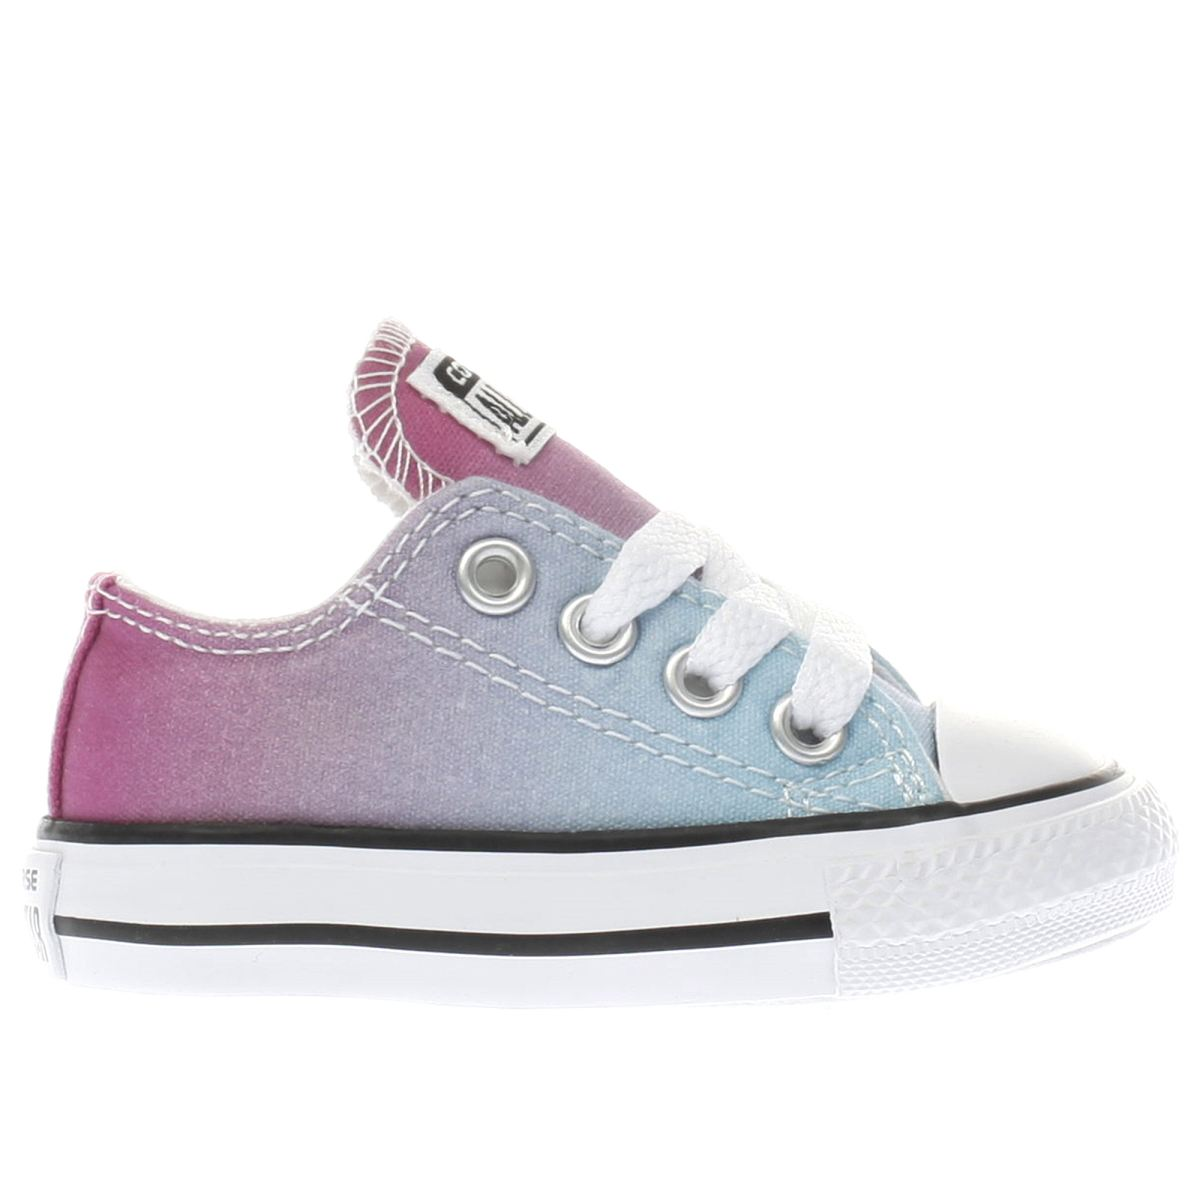 converse pink all star ox sunset wash Girls Toddler Trainers